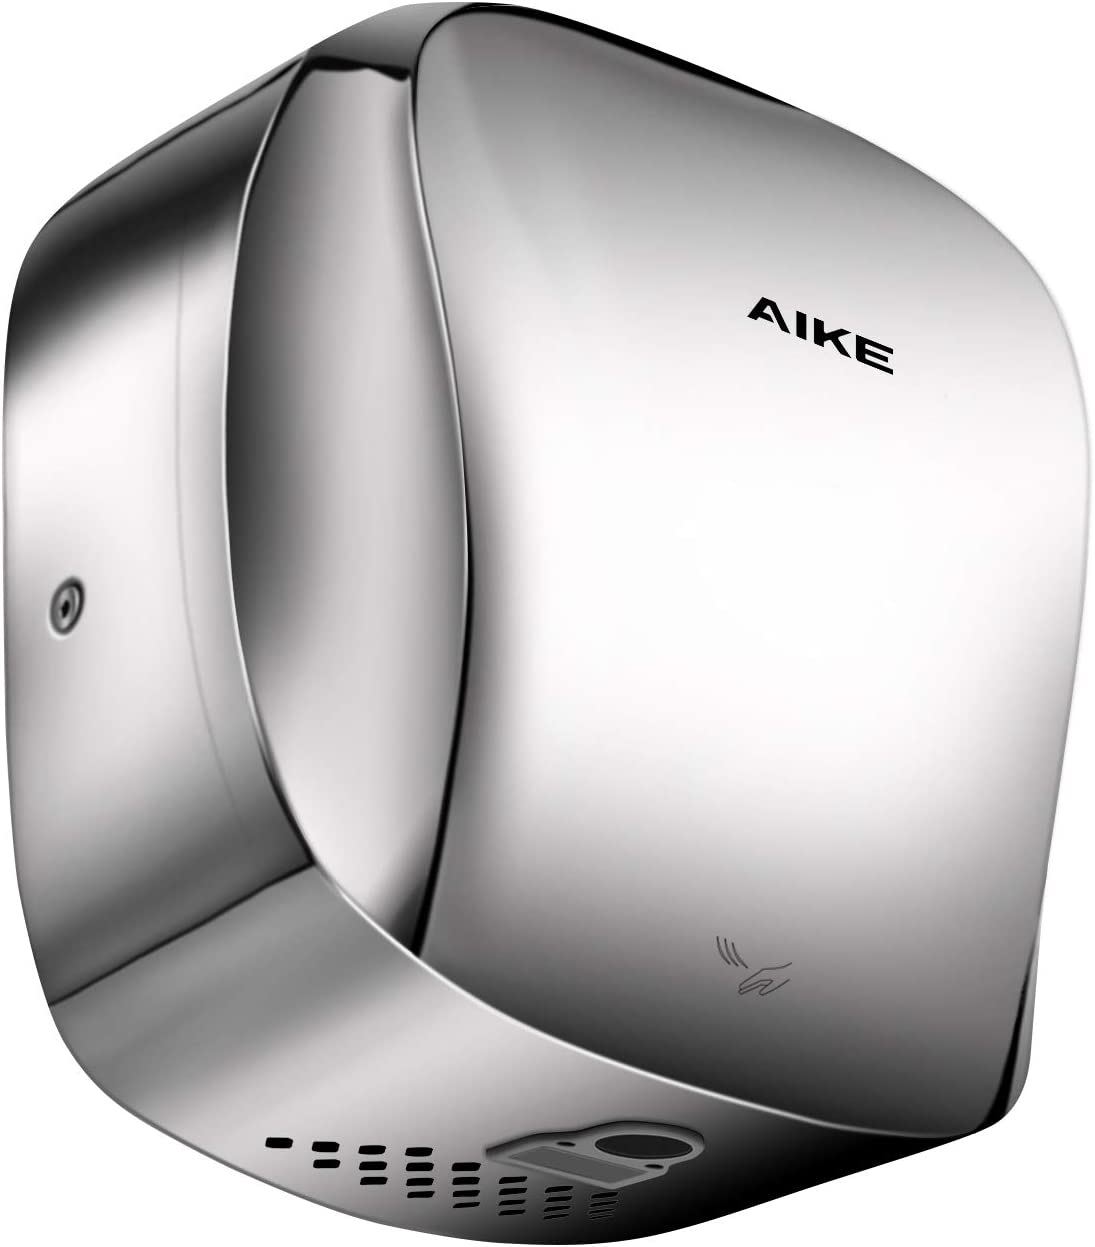 AIKE AK2903 Heavy Duty Commercial Hand Dryer